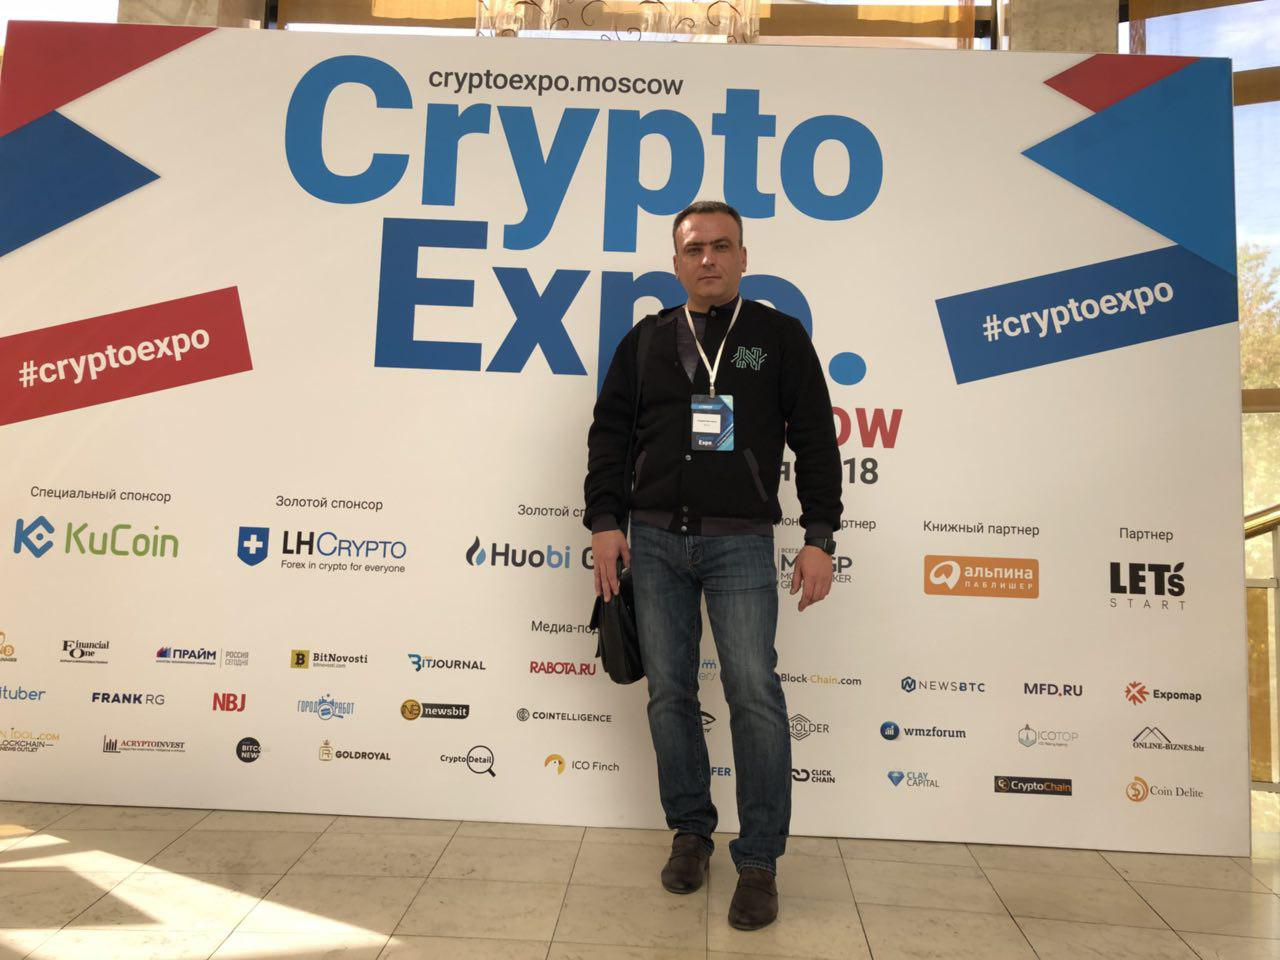 Neironix CEO to Speak on Blockchain Economy Risk Management in Moscow